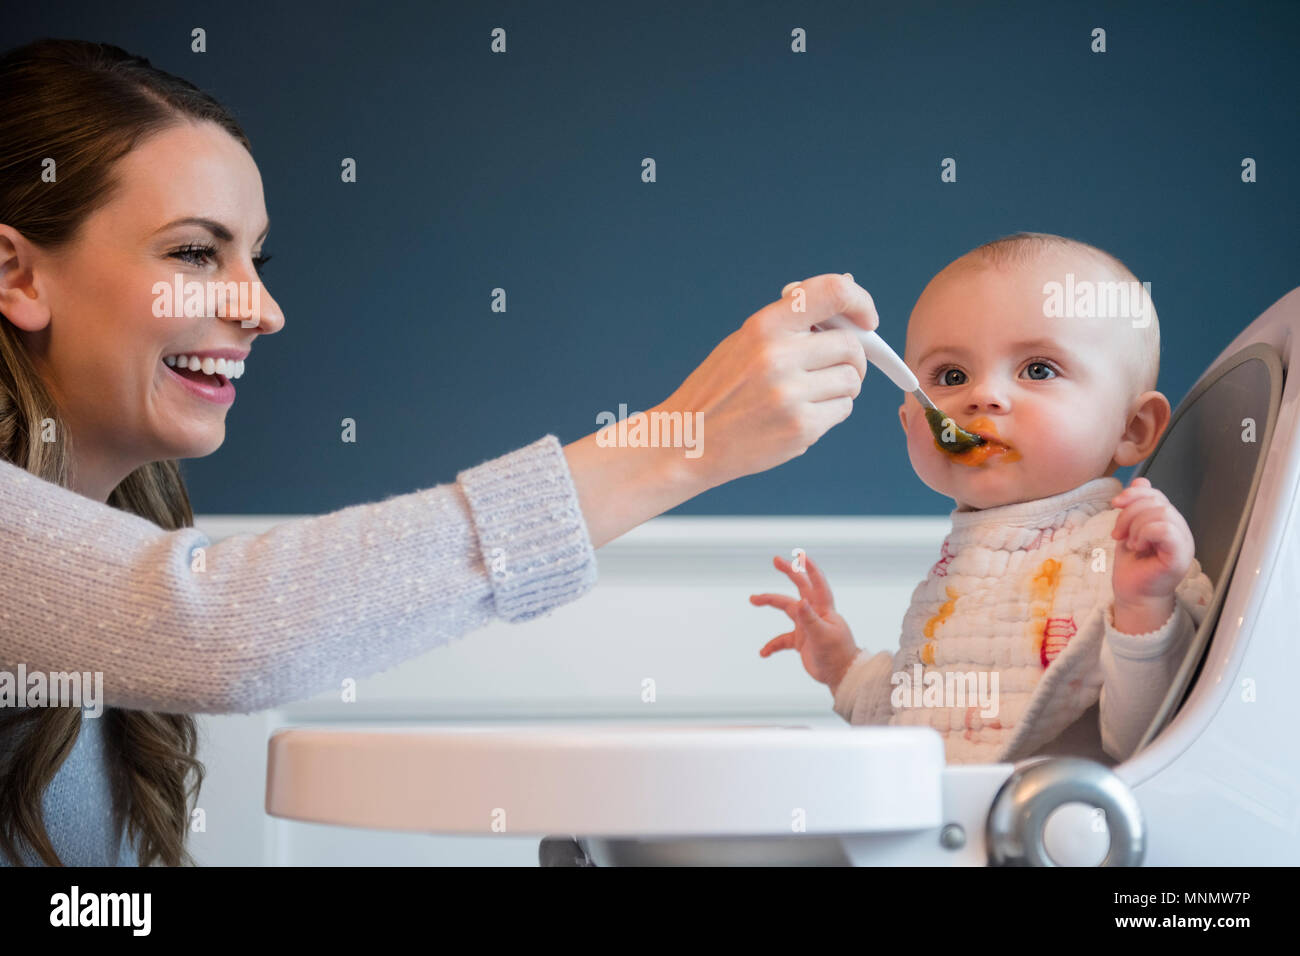 Mother feeding baby (18-23 months) - Stock Image